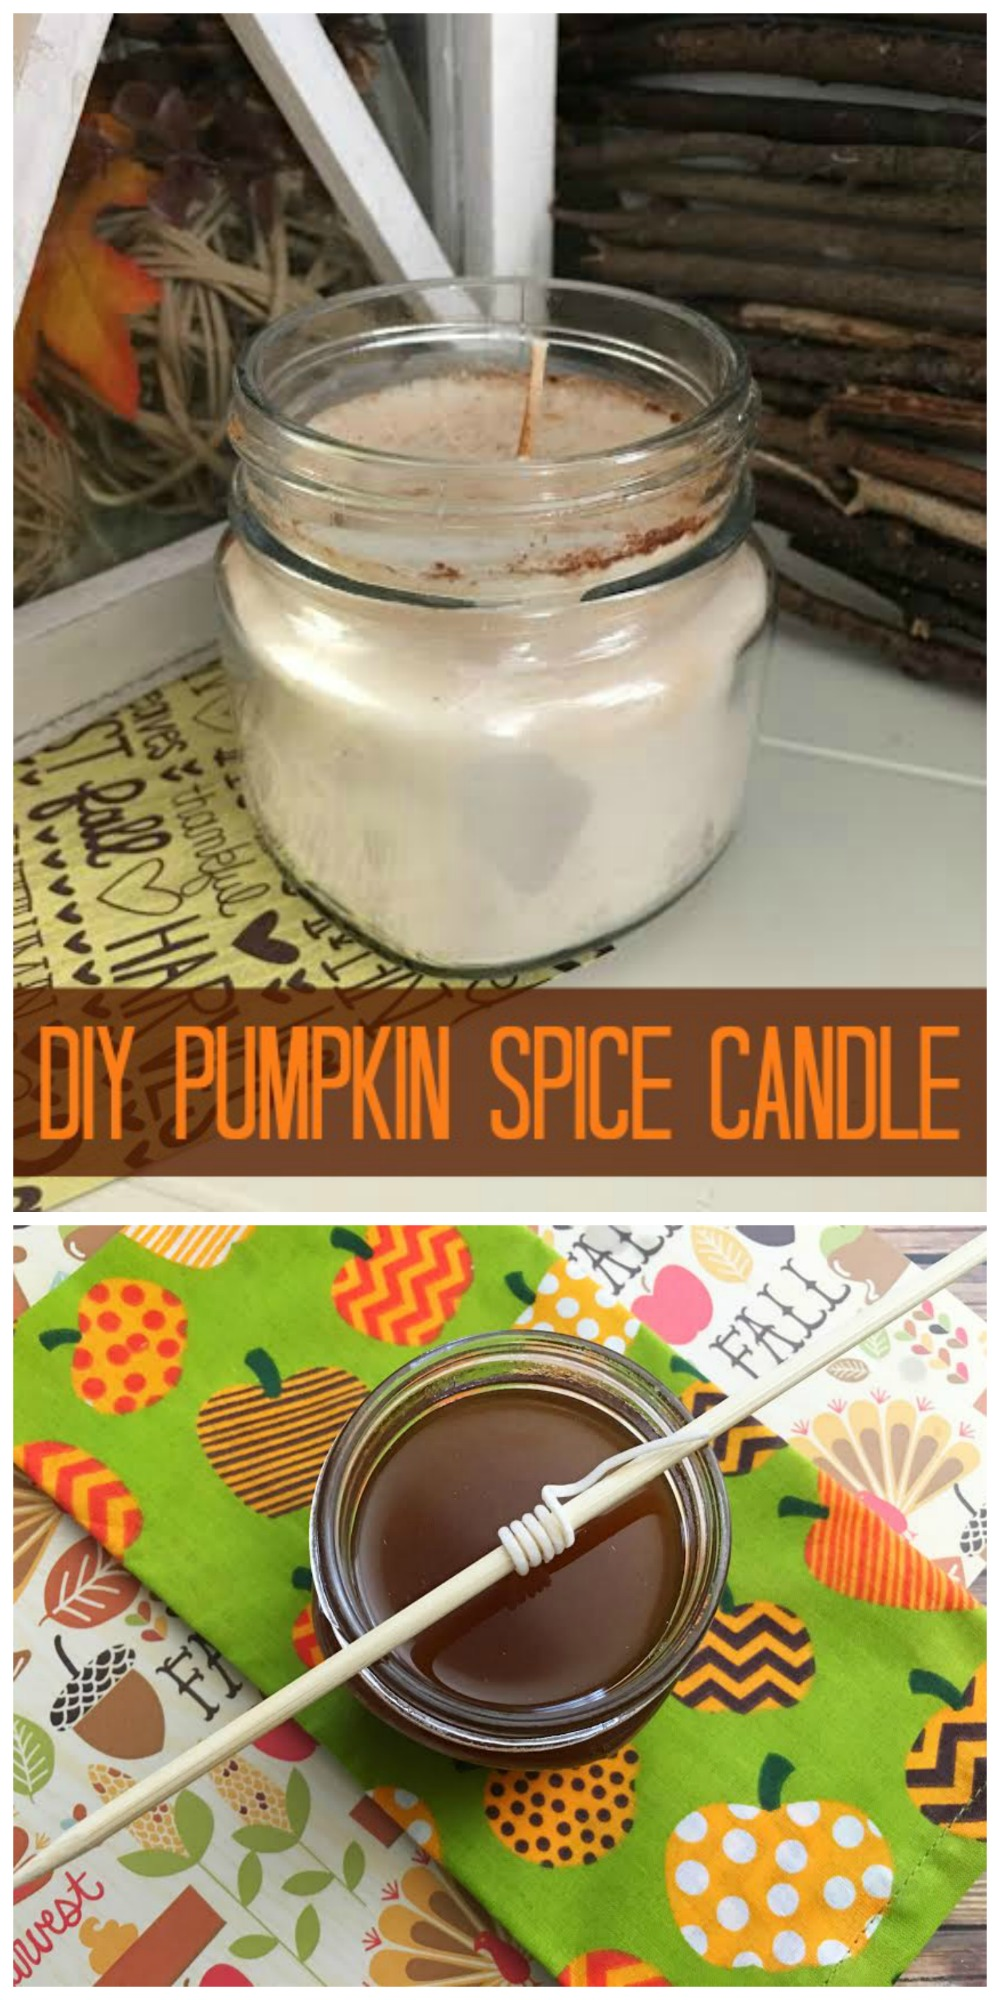 aking your own candles is easier than you think and you only need a few materials to. If you are a candle lover, try this easy DIY Pumpkin Spice Candle.